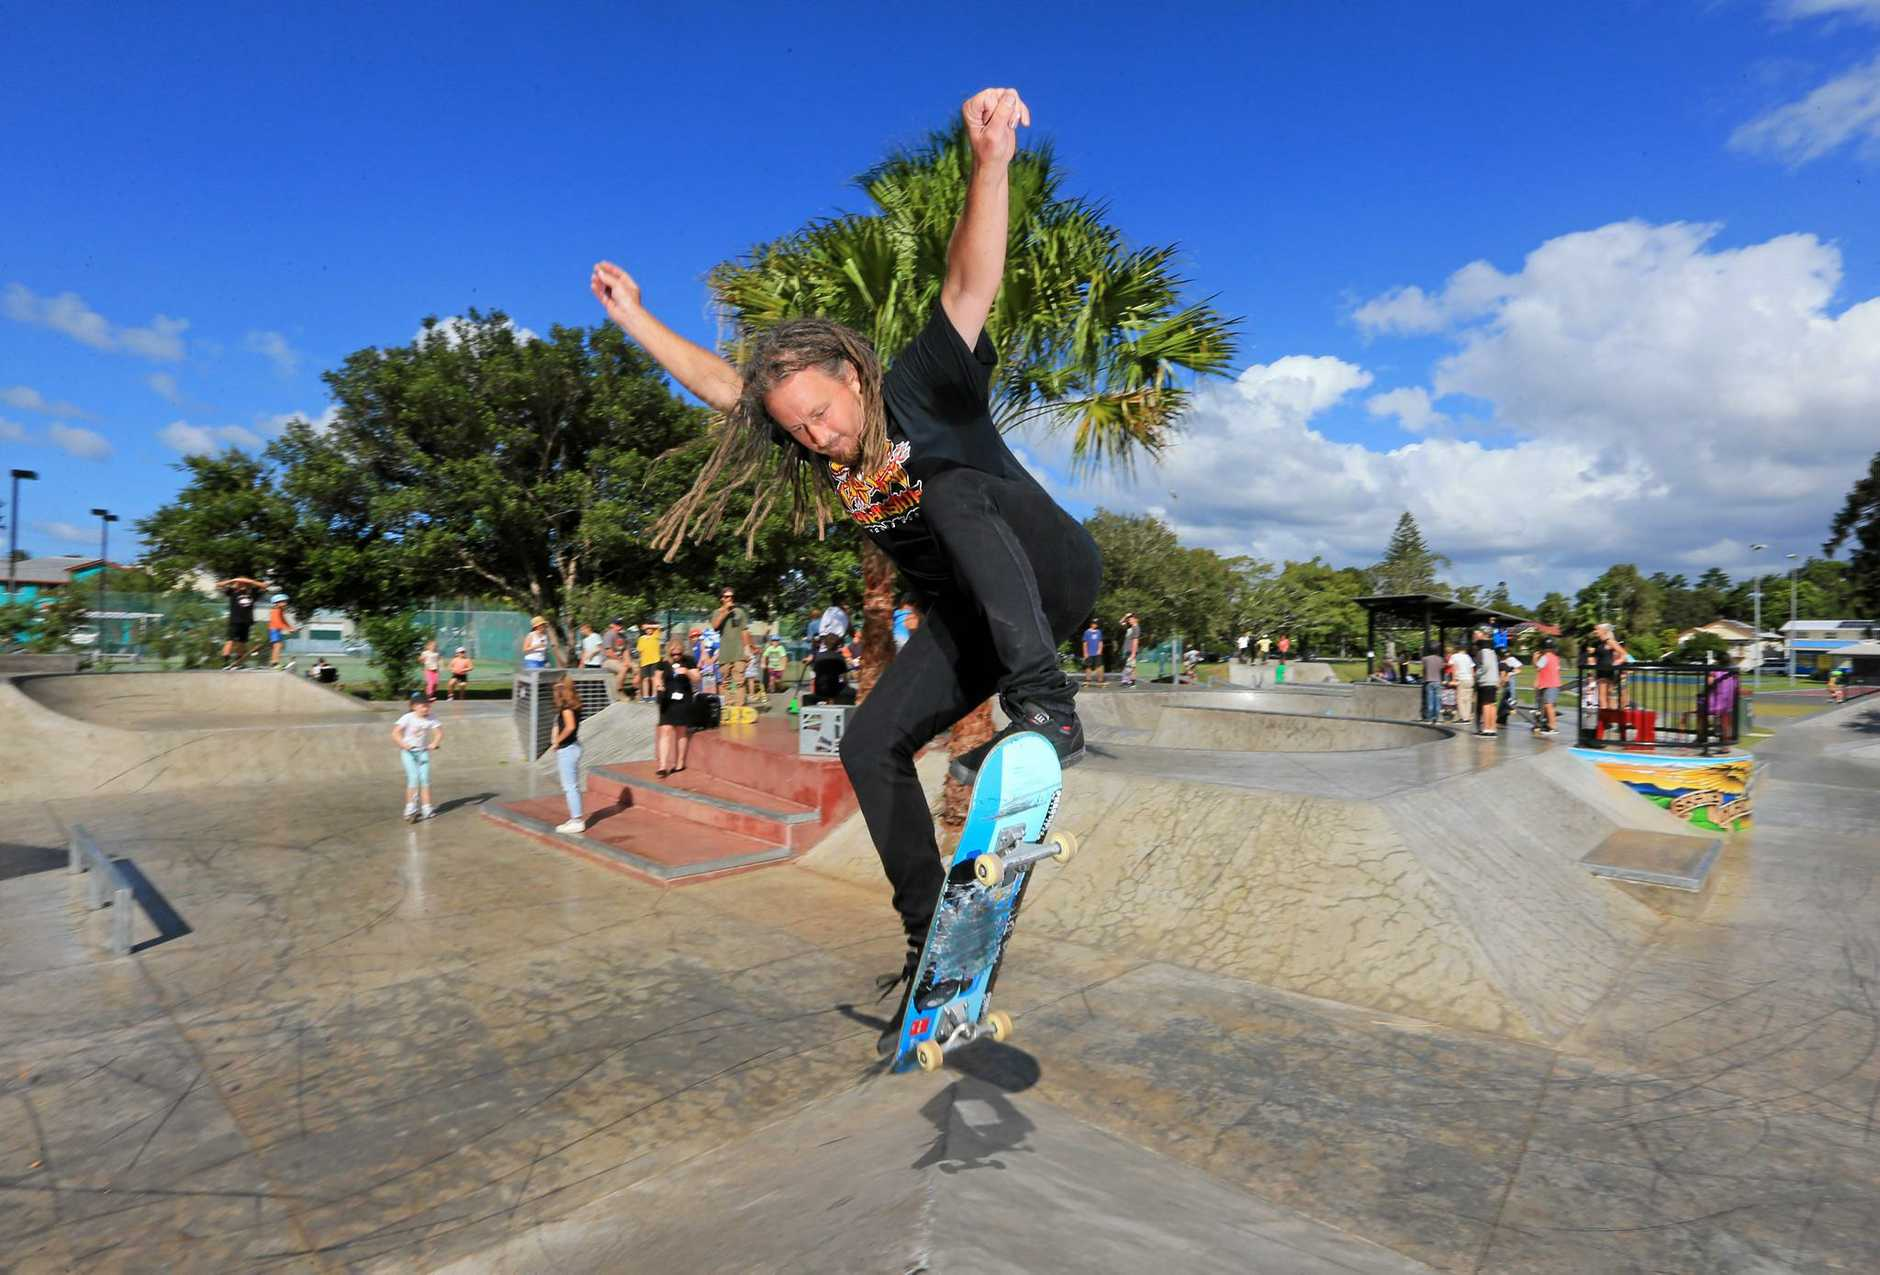 Local skating icon Tony Lawrence puts on a show for the local kids during the opening to the new skate park at Murwillumbah.